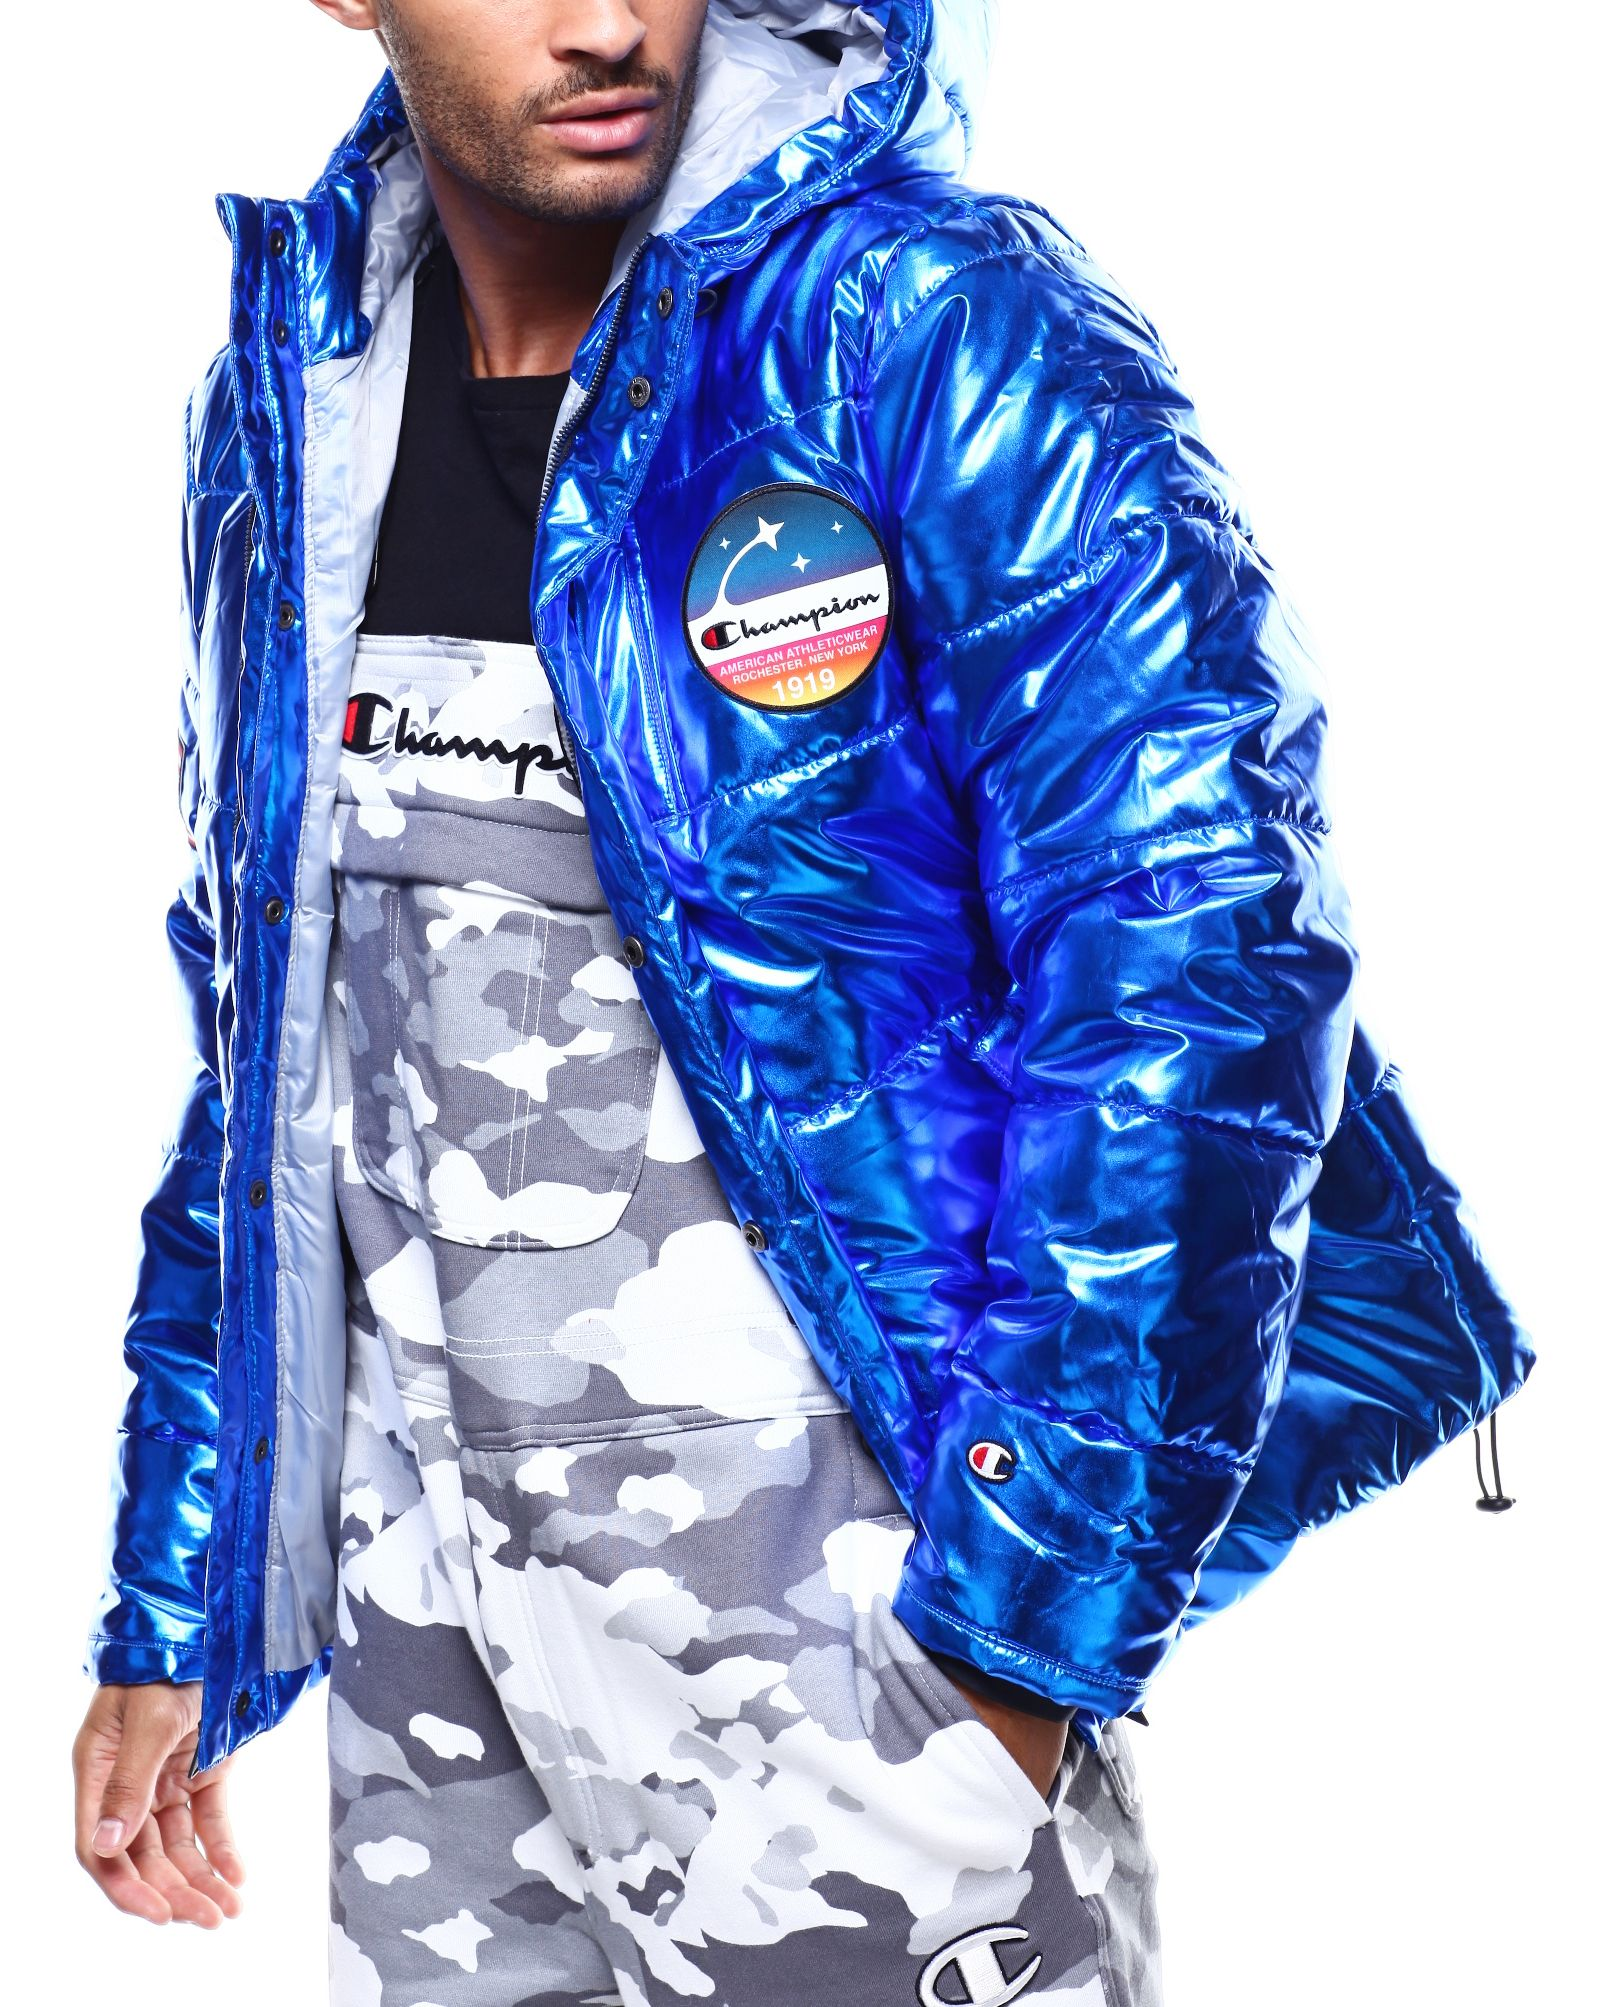 470d864f2 METALLIC PUFFER COAT Men's Outerwear from Champion at DrJays.com ...